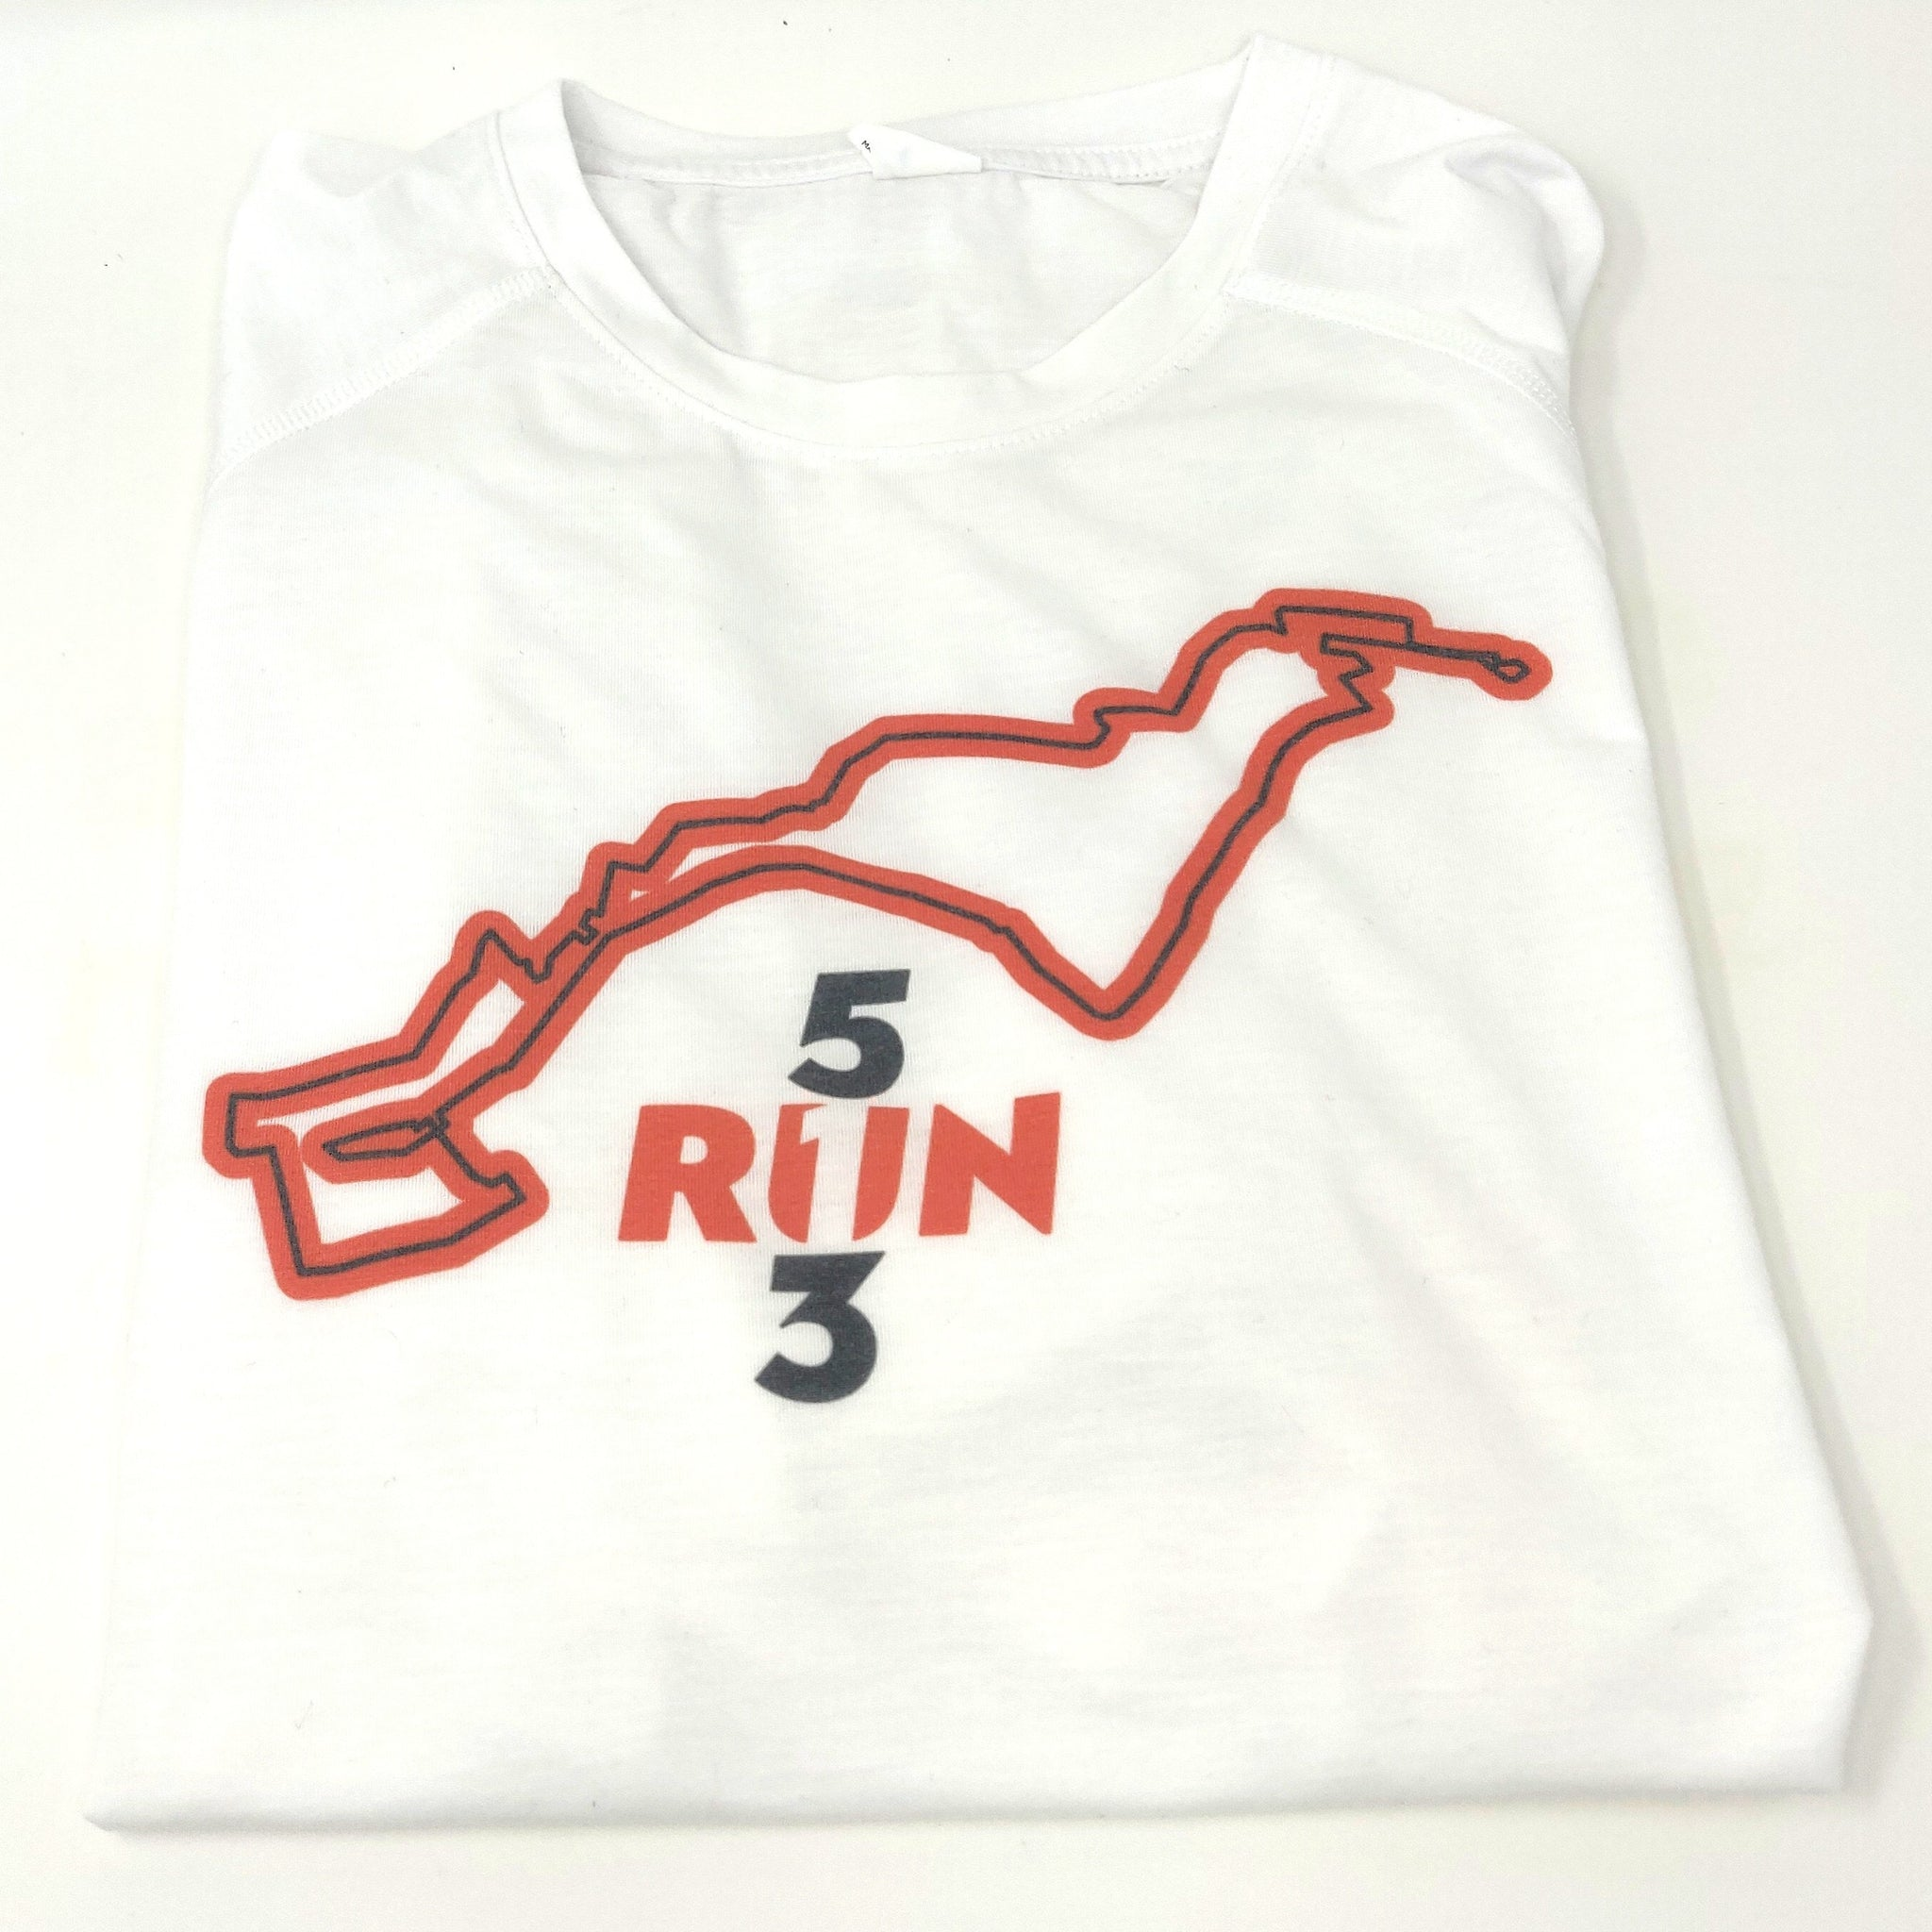 5RUN3 Flying Pig Raglan Running Top